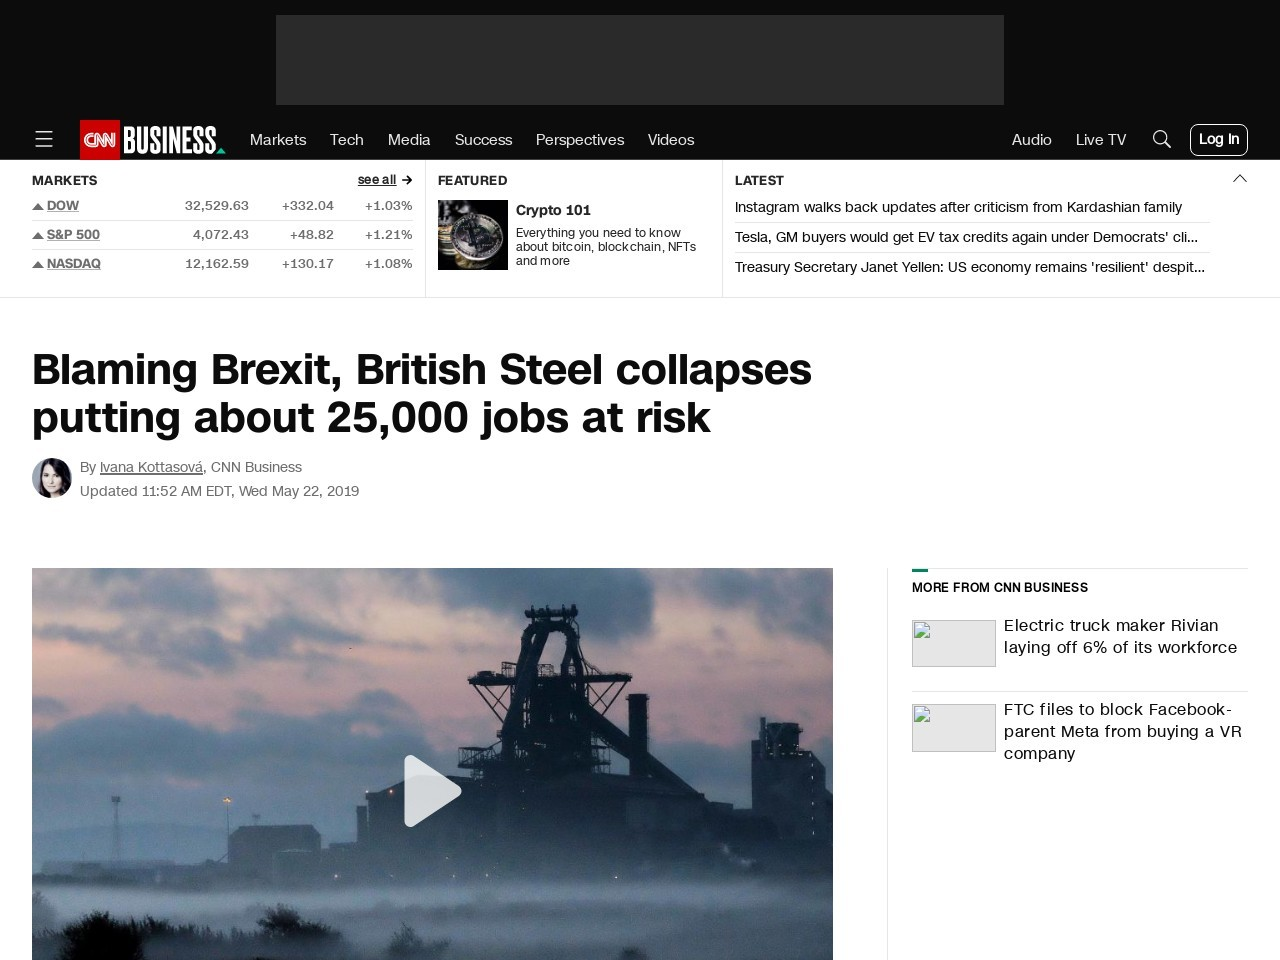 Blaming Brexit, British Steel collapses putting nearly 25,000 jobs at risk